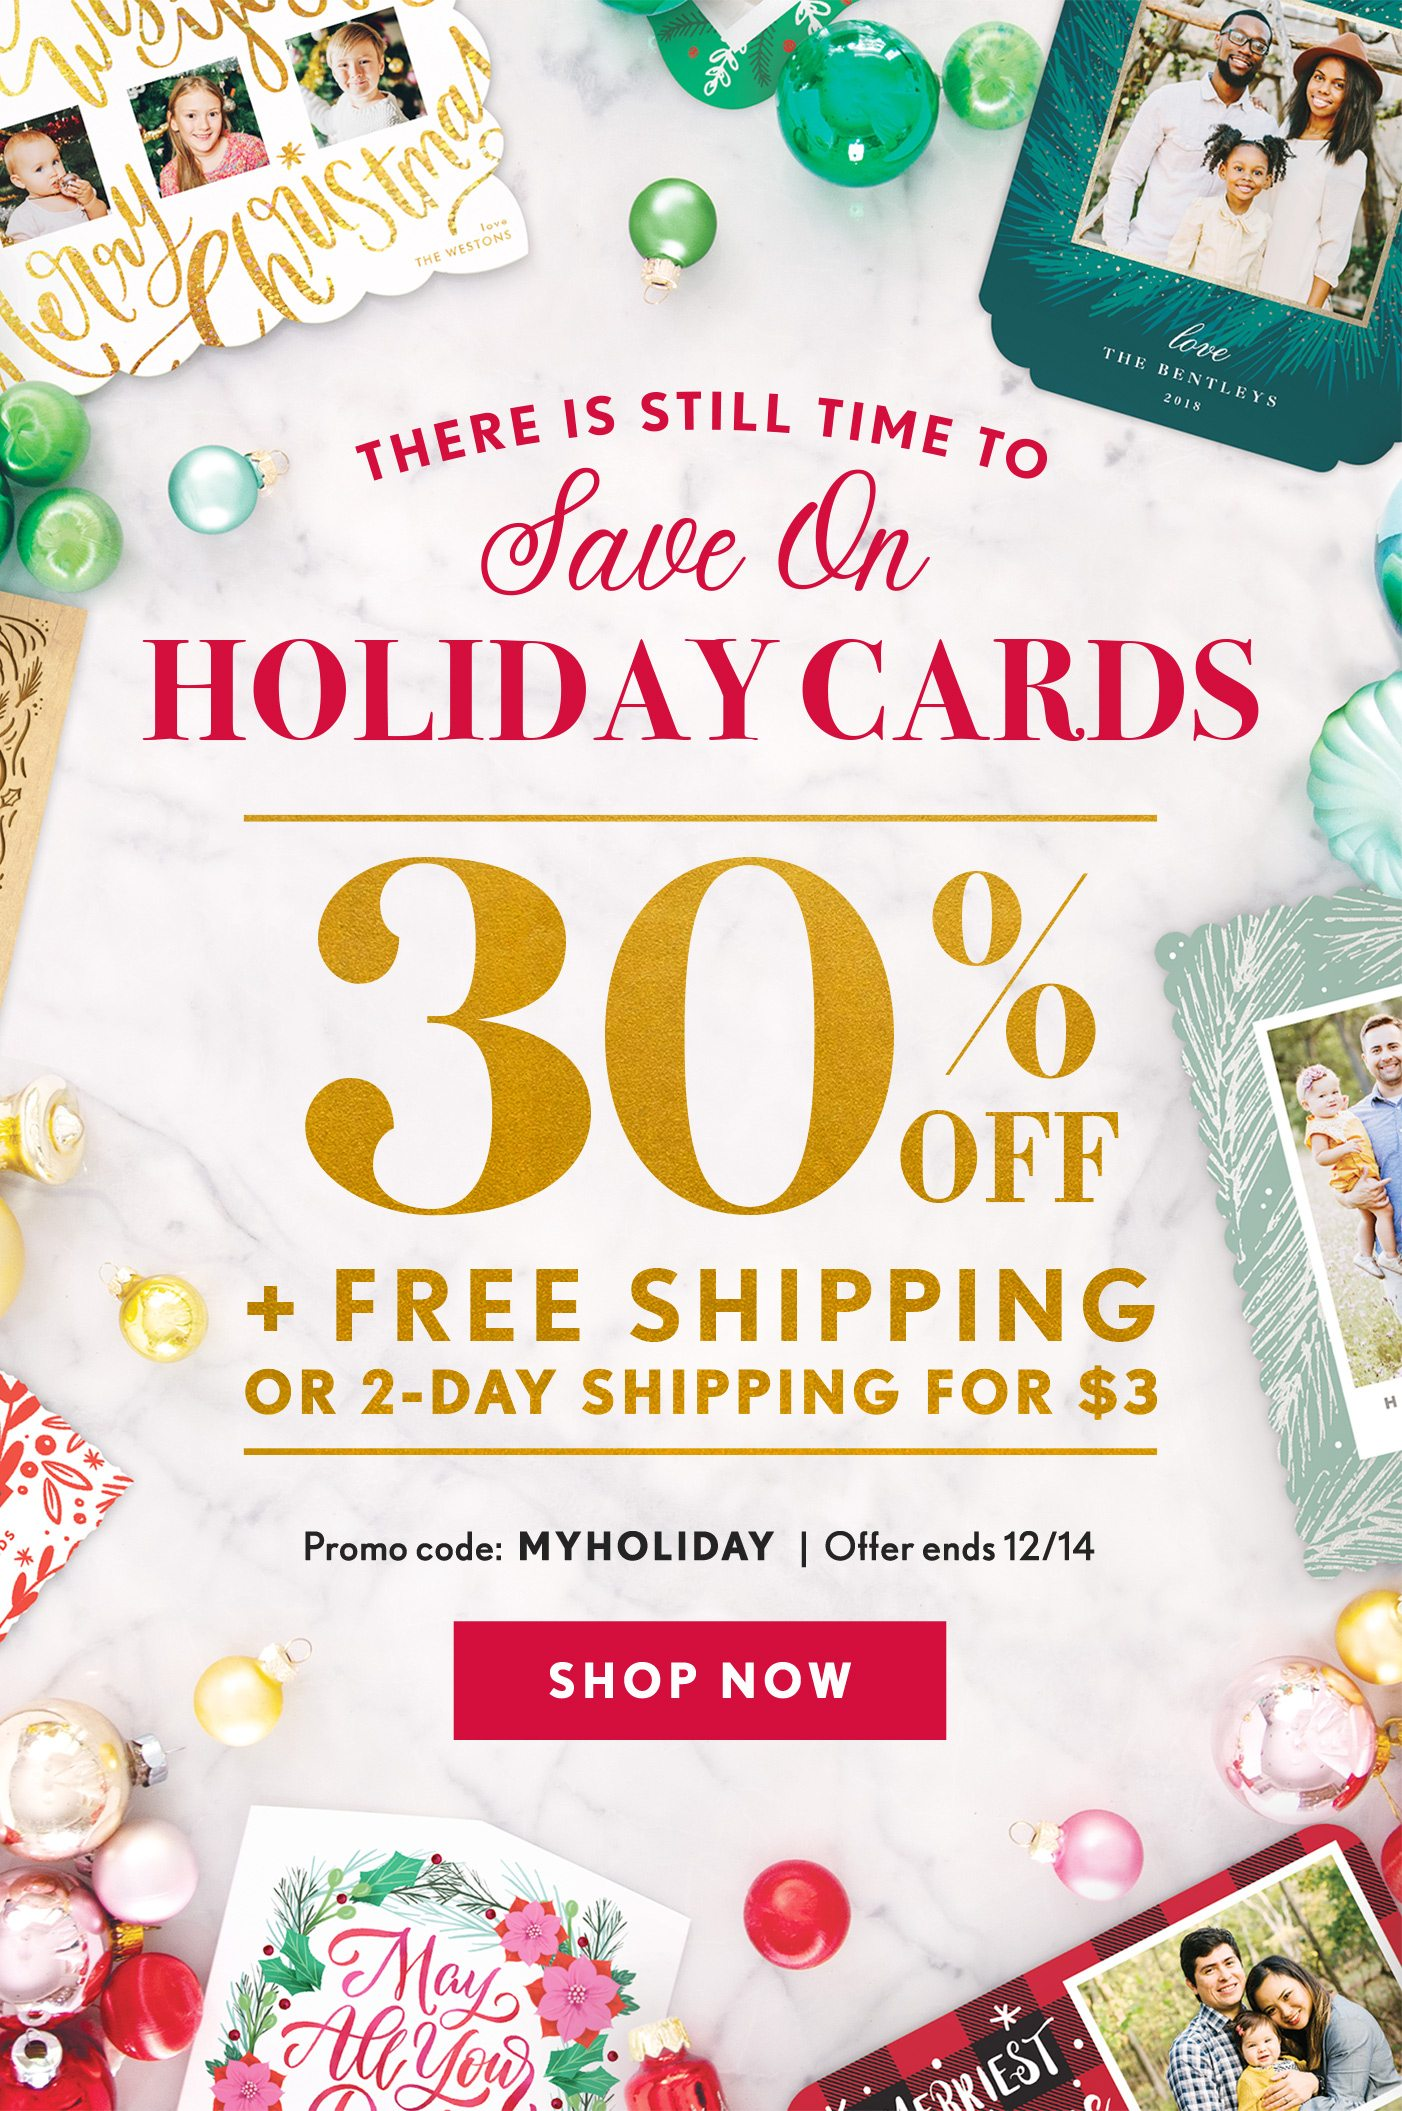 35b56351 THERE IS STILL TIME TO SAVE ON HOLIDAYS CARDS | 30% OFF + FREE SHIPPING